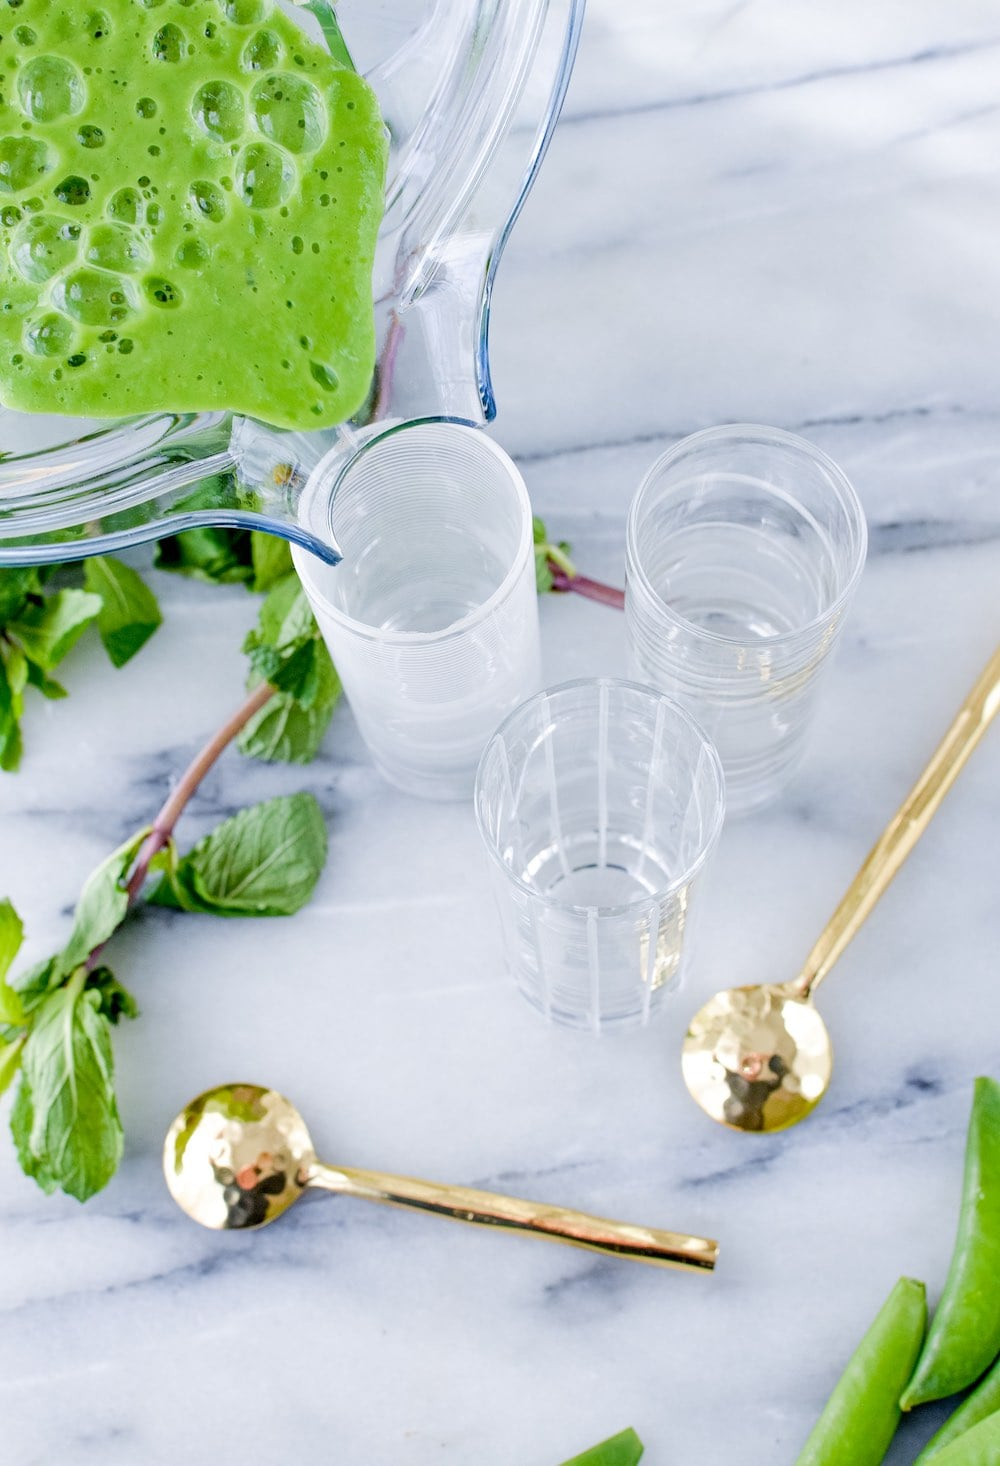 Pour the cold pea soup into bowls, shot or shooter glasses.